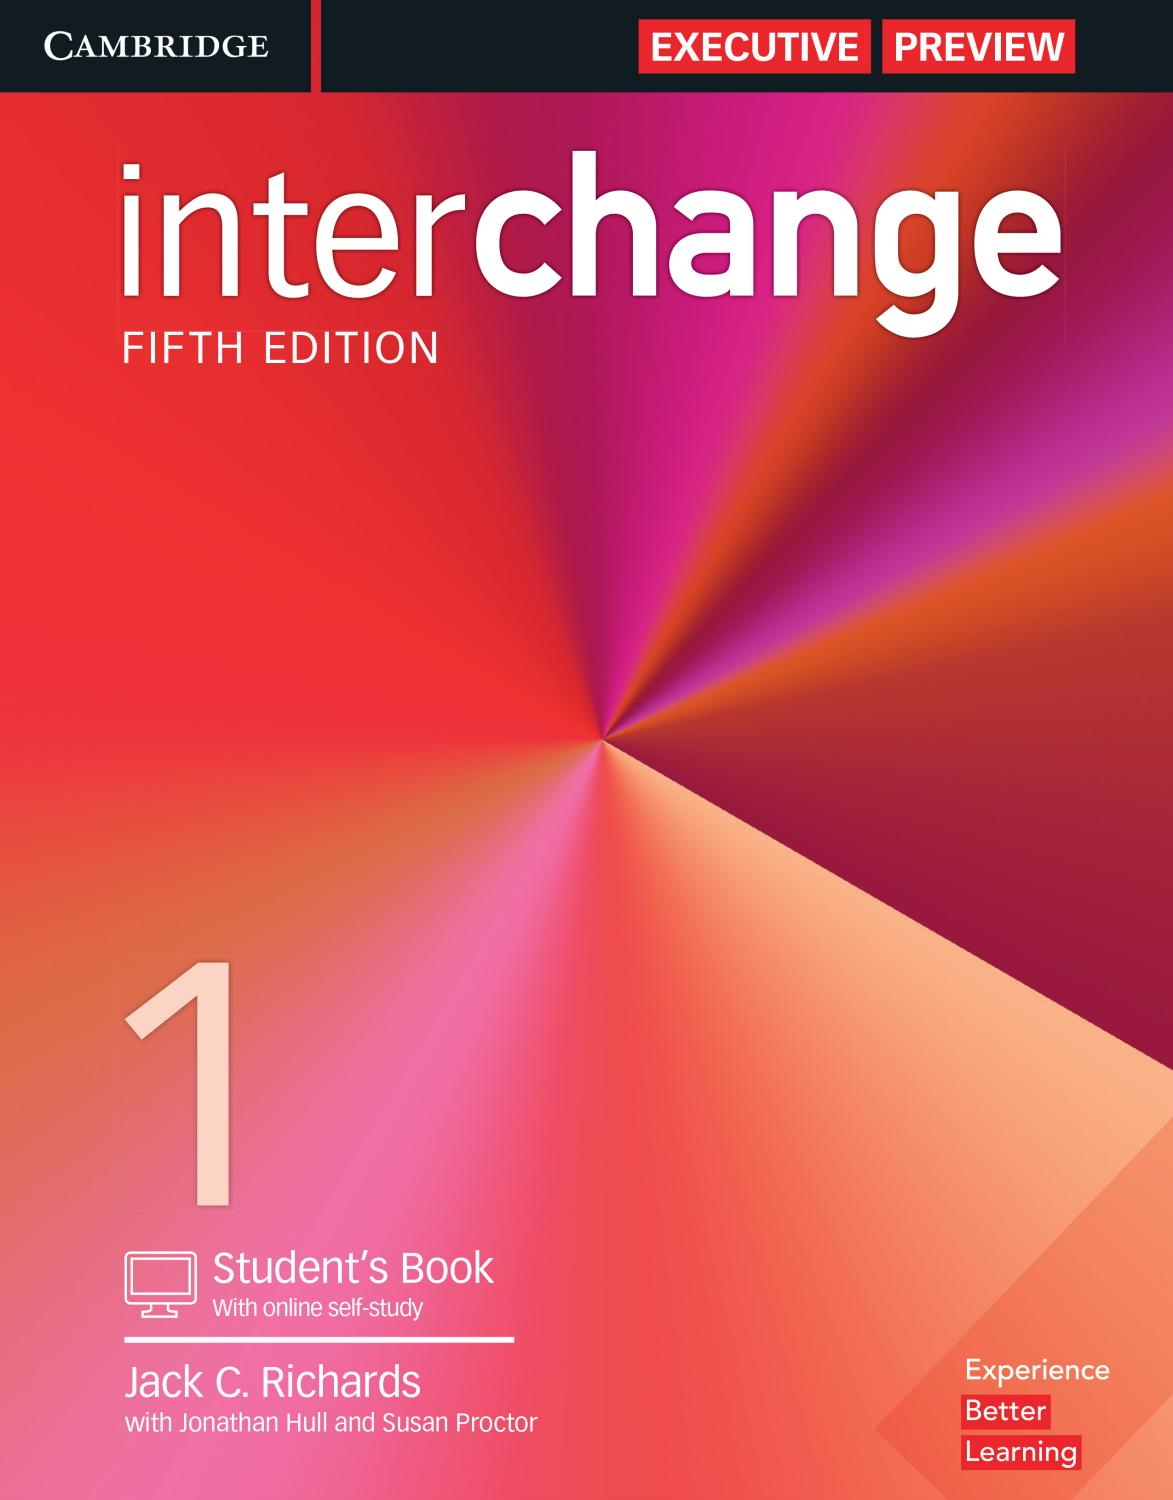 hight resolution of Interchange Fifth Edition - Executive Preview by Cambridge University Press  - issuu